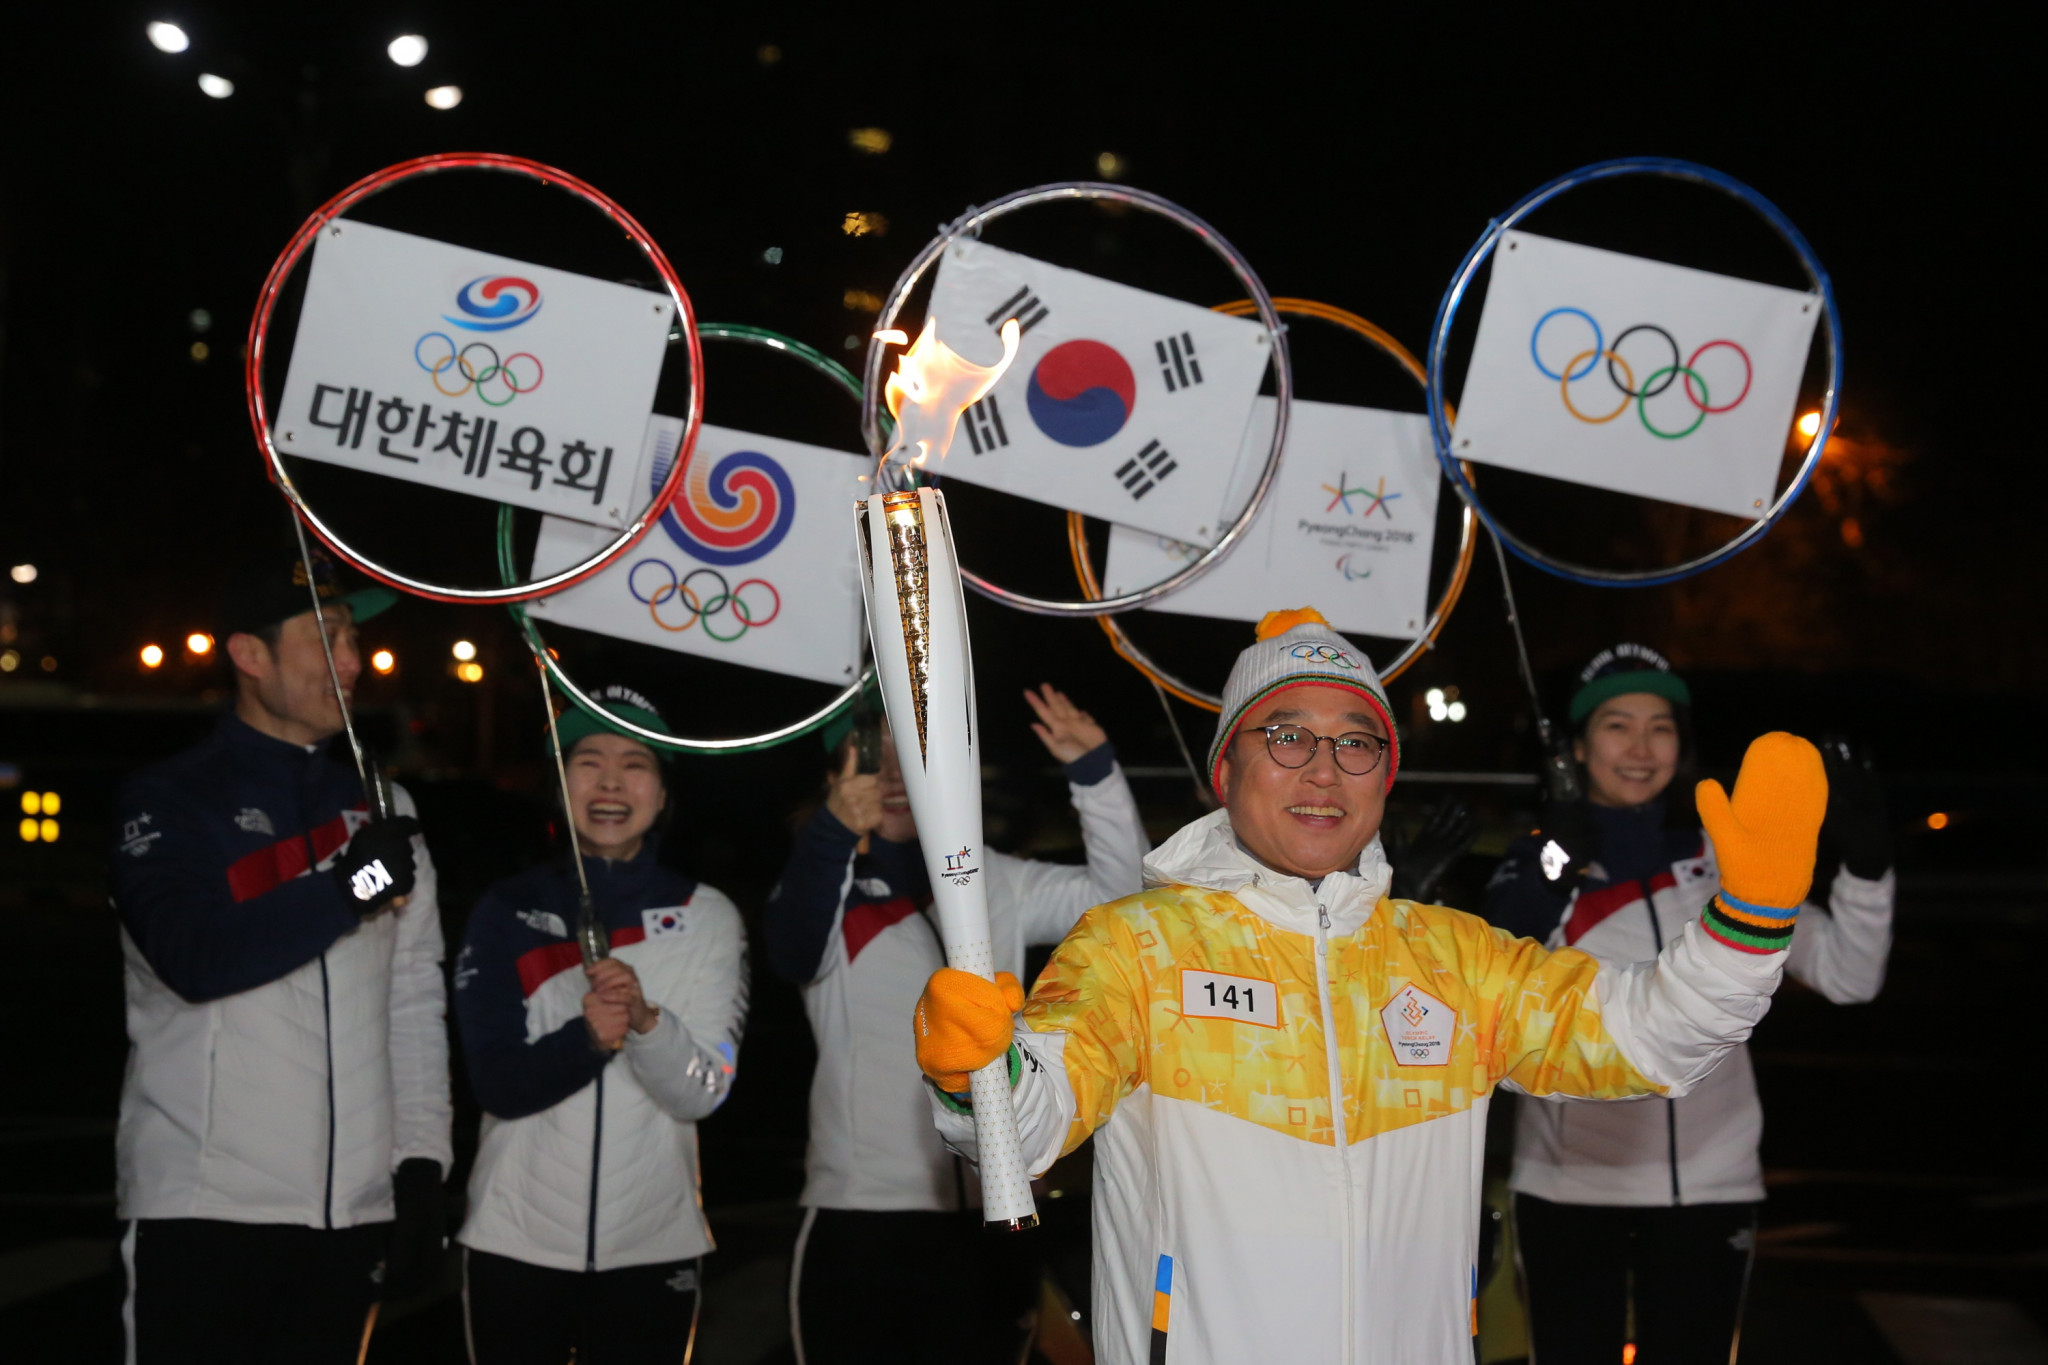 Pyeongchang 2018 Torch Relay continues journey in Seoul and prepares to head for border